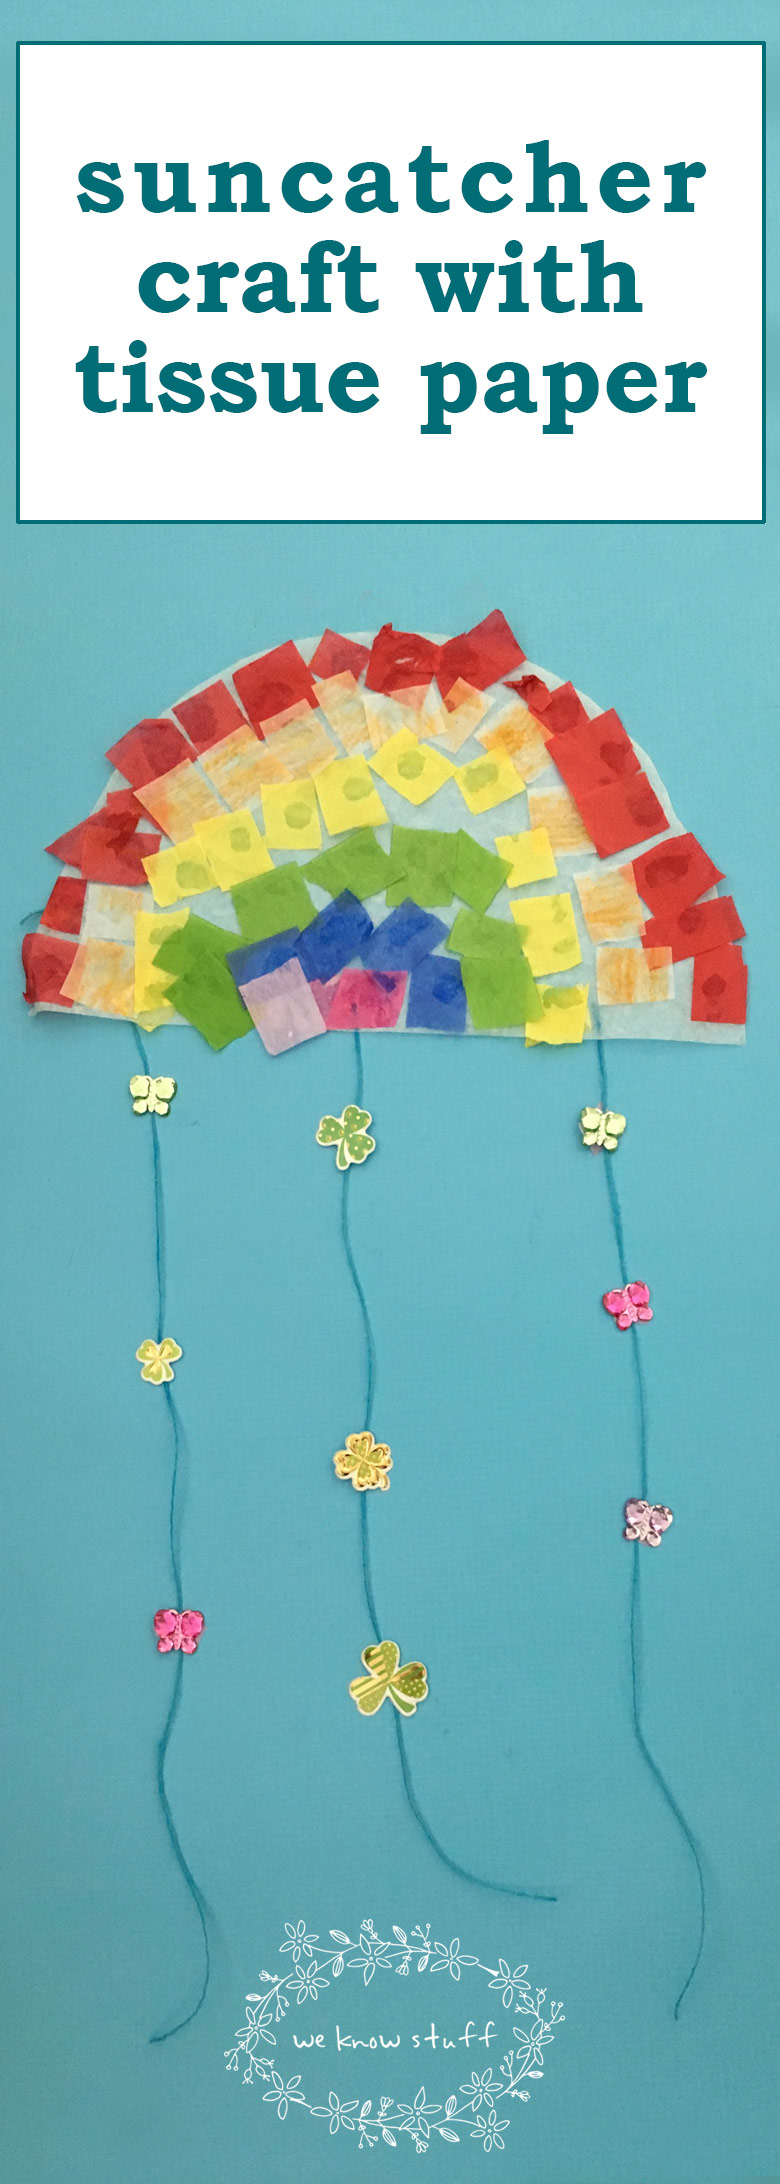 This super fun Suncatcher Craft With Tissue Paper makes really cute Stained Glass Rainbows. It's a great sensory activity for little hands and makes an easy classroom project for spring!